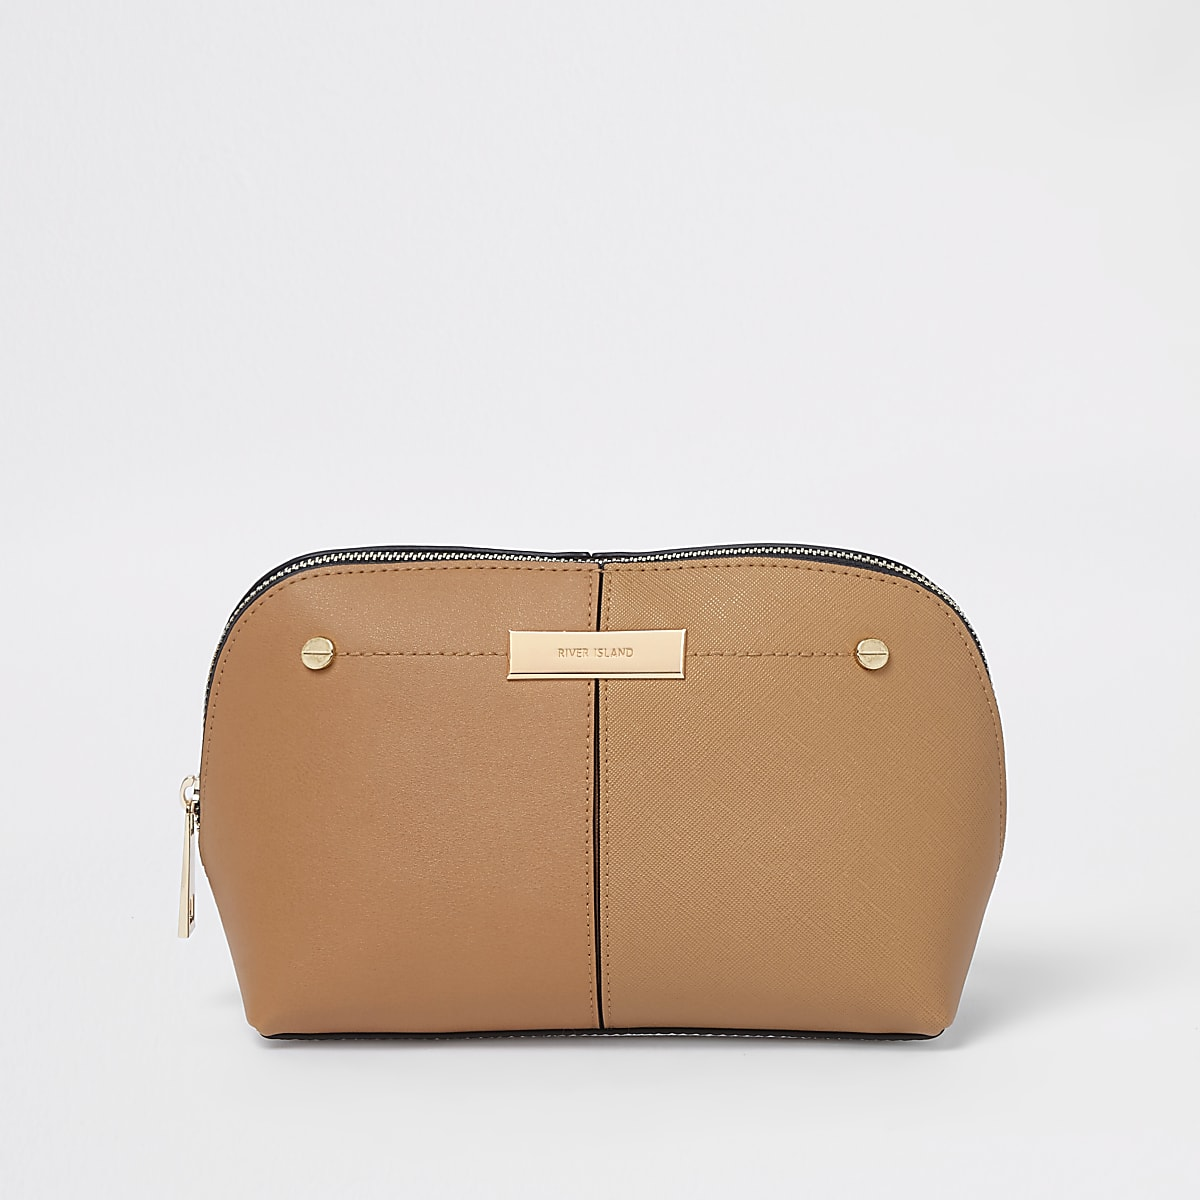 Beige zip top makeup bag